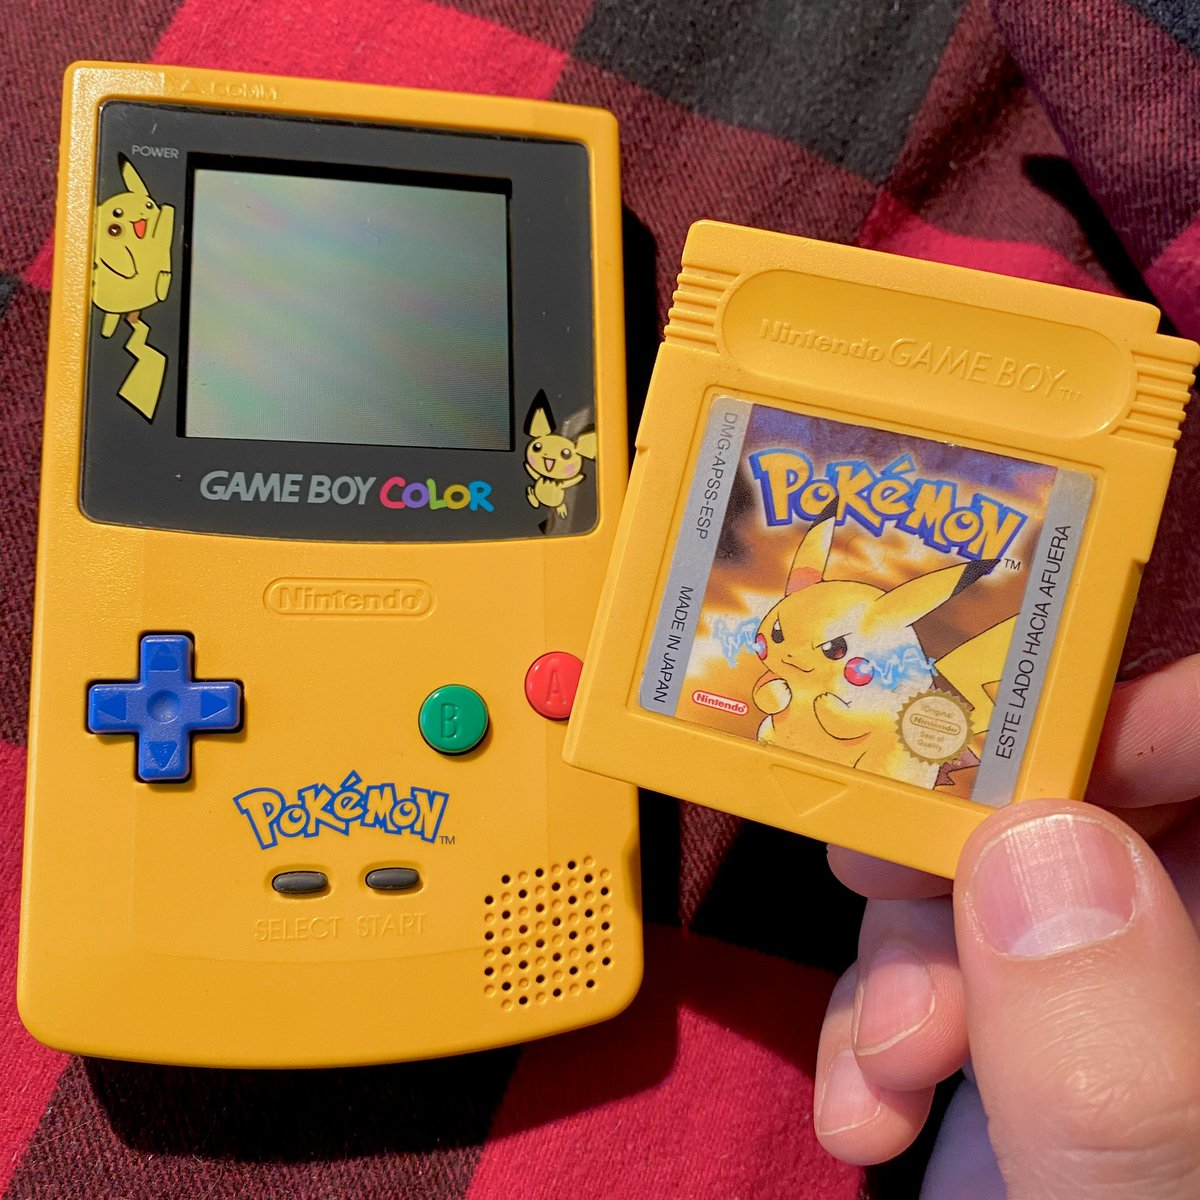 Happy #PokemonDay! This here is my first Pokémon game, I bought it in the year 2000, this was the first video game I bought with my own money, I worked painting a house and I bought it with my first pay.